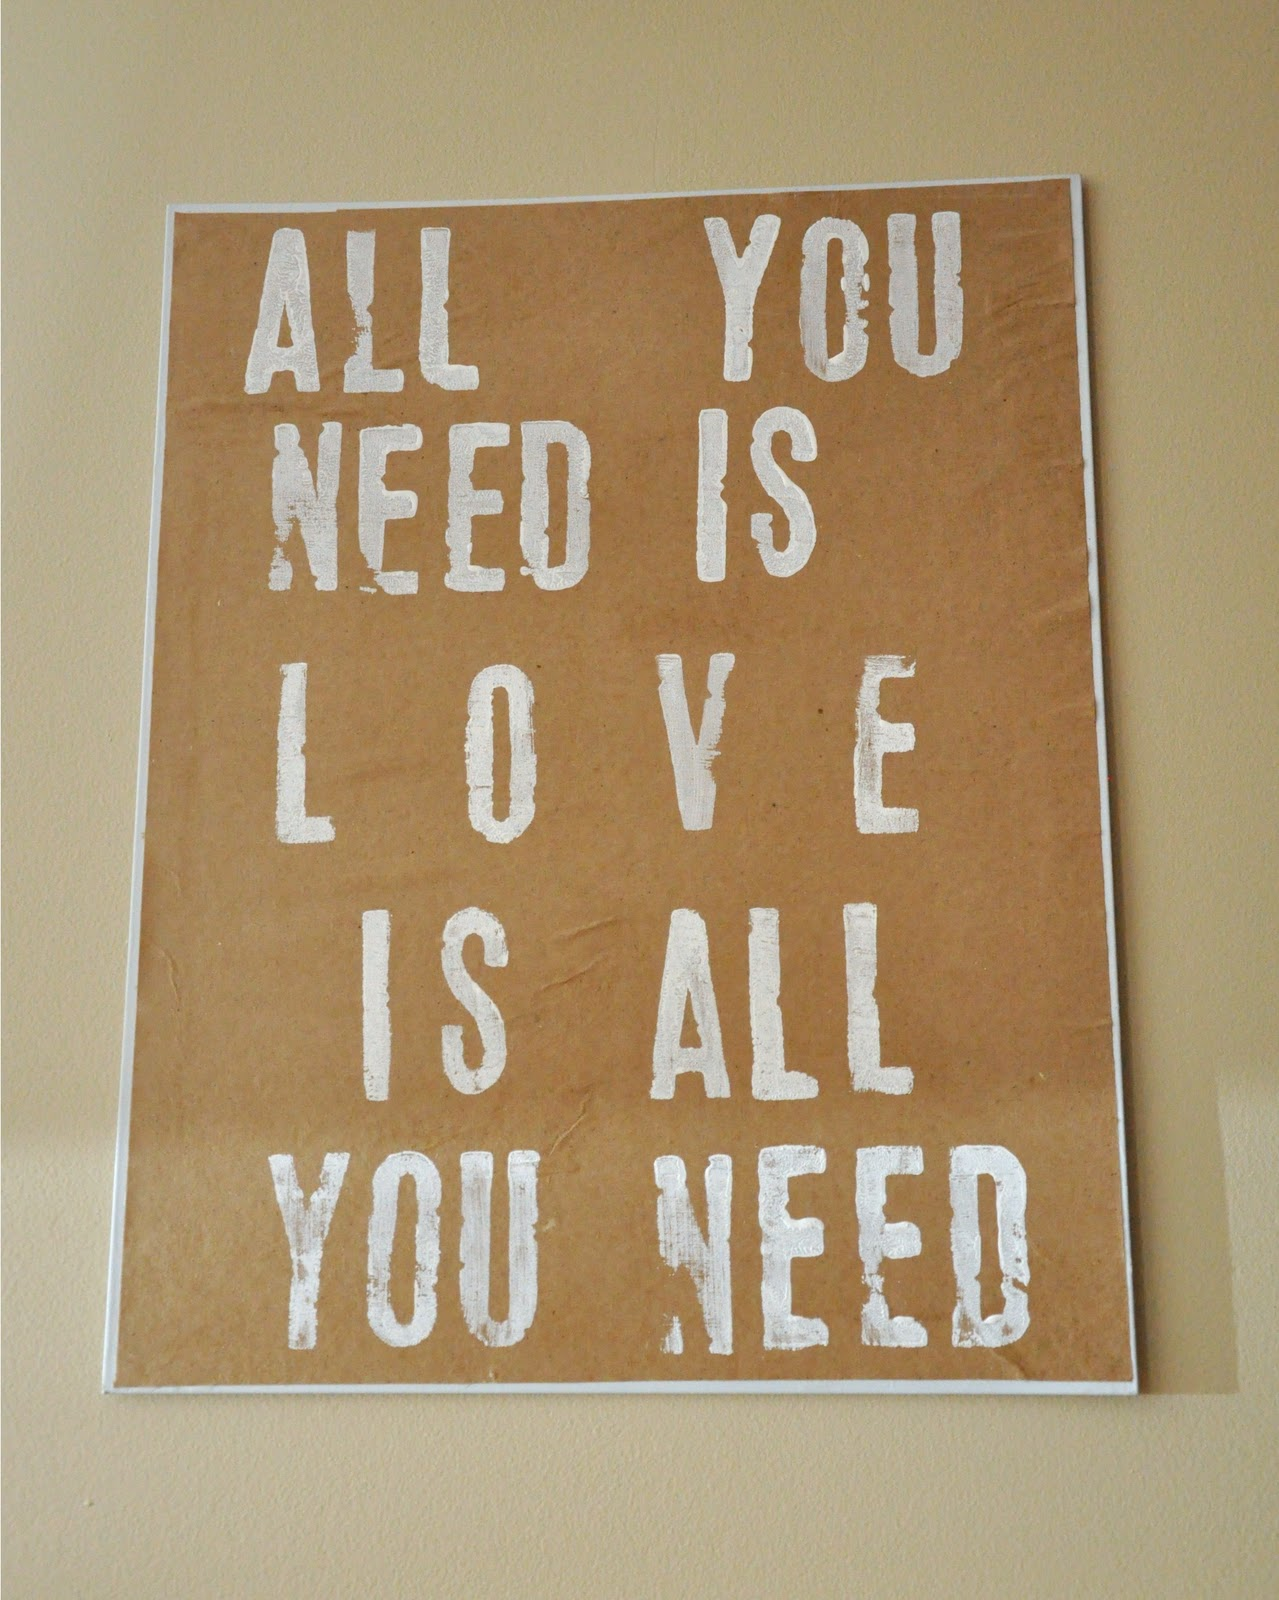 Funny Pictures Gallery: Love signs, love signs linda goodman